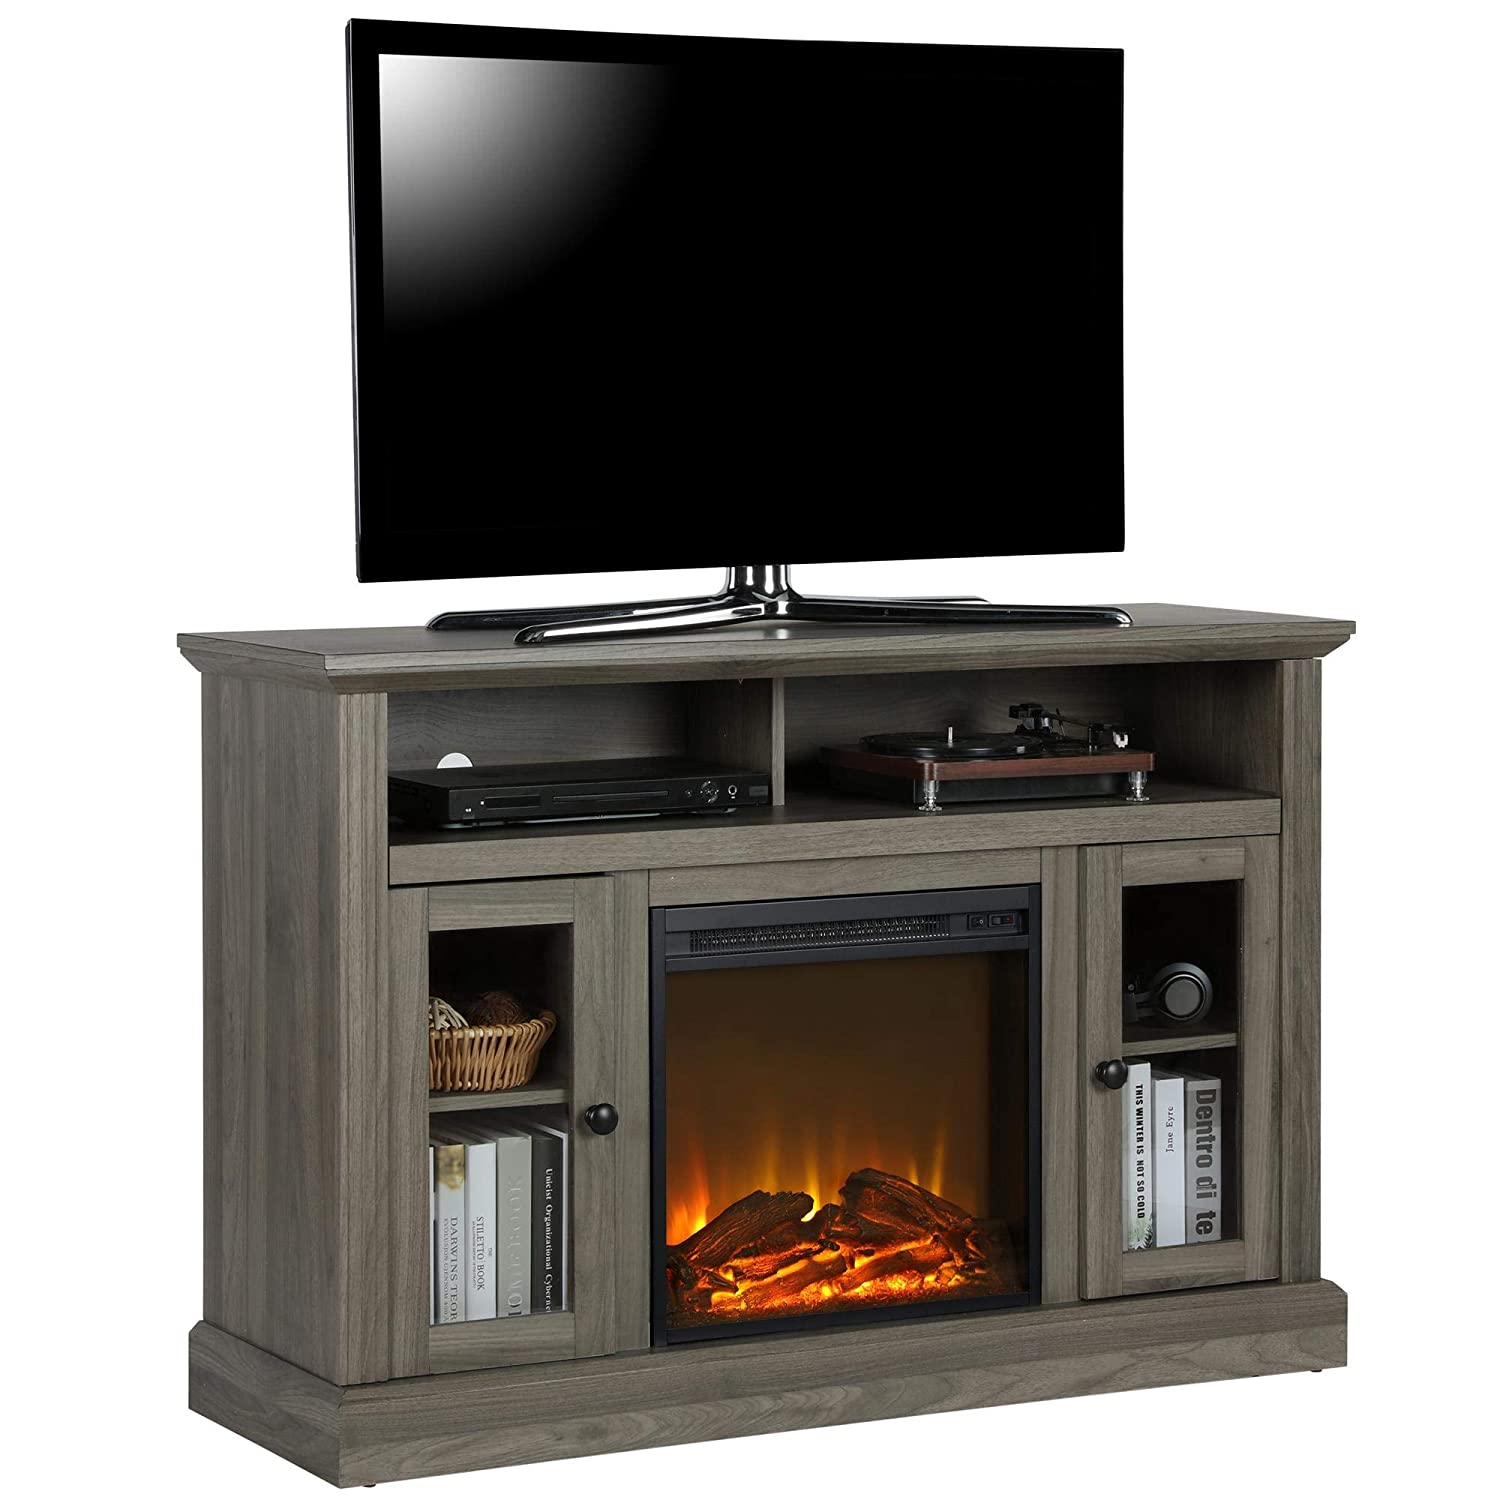 Swell Ameriwood Home 1764895Com Chicago Tv Stand With Fireplace Rustic Gray Download Free Architecture Designs Estepponolmadebymaigaardcom